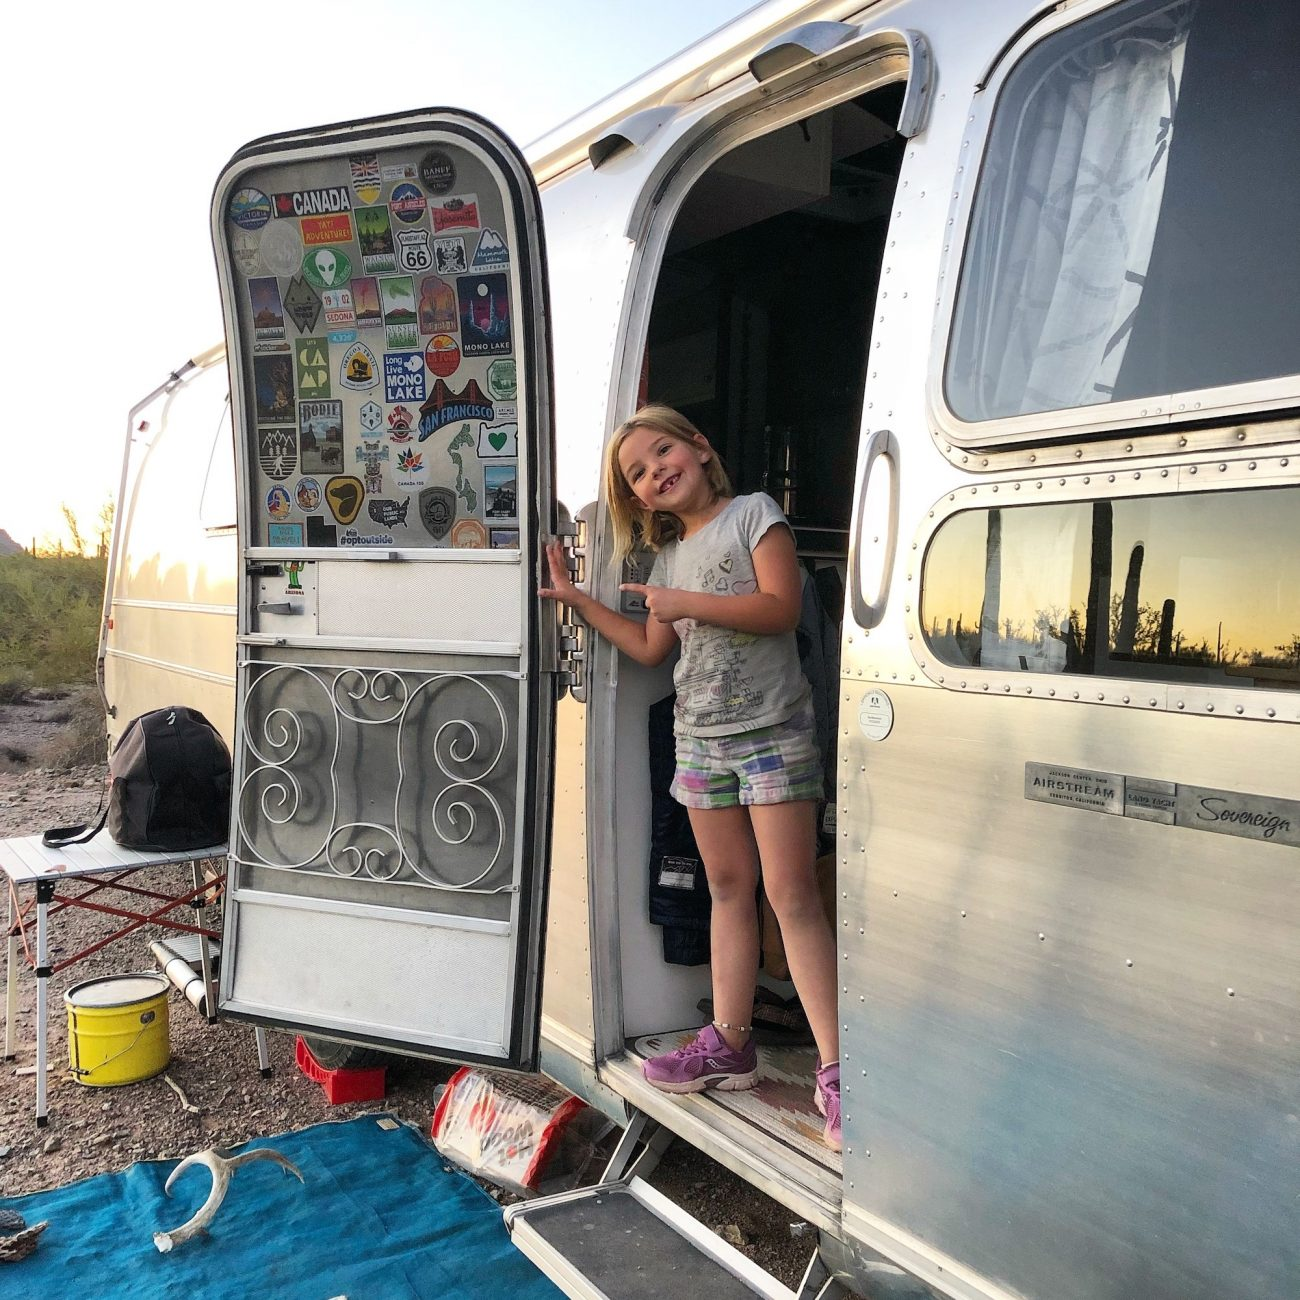 Little girl showing off missing tooth in Airstream